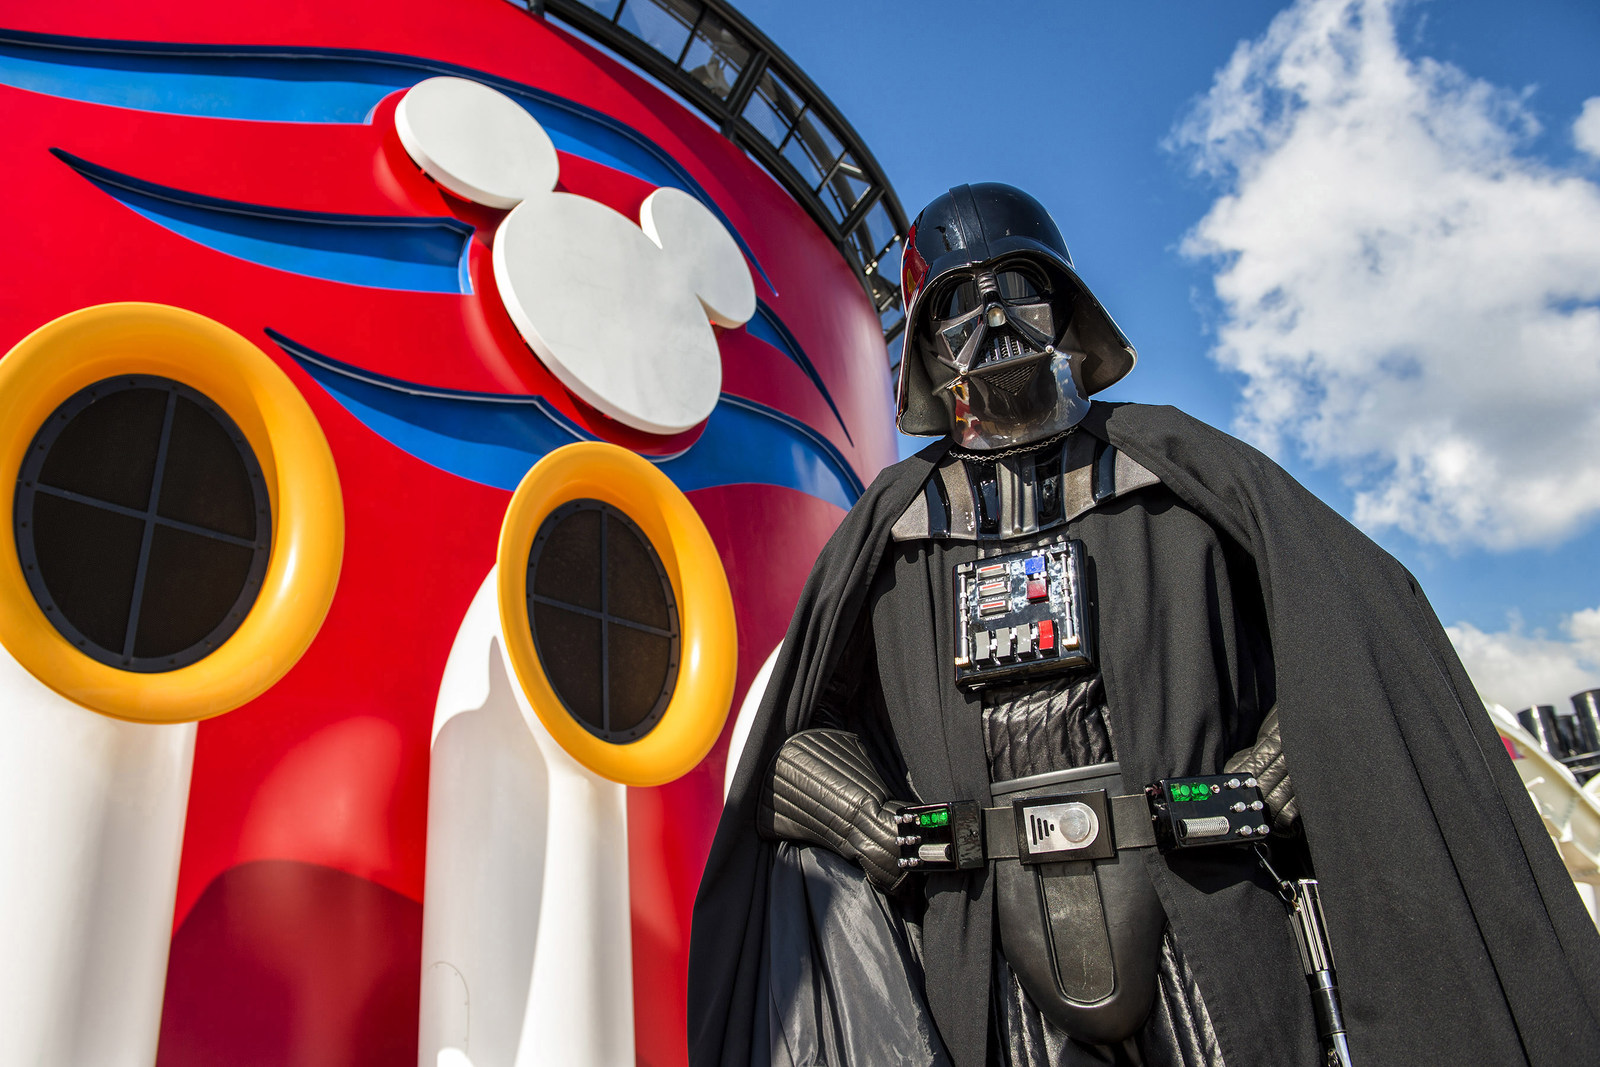 Disney Cruise Line guests can experience the legendary adventures and iconic characters from the Star Wars saga aboard the Disney Fantasy in a day-long celebration: Star Wars Day at Sea. The event combines the power of the Force, the magic of Disney and the excitement of cruising for an out-of-this-galaxy experience unlike any other. (Matt Stroshane, photographer)